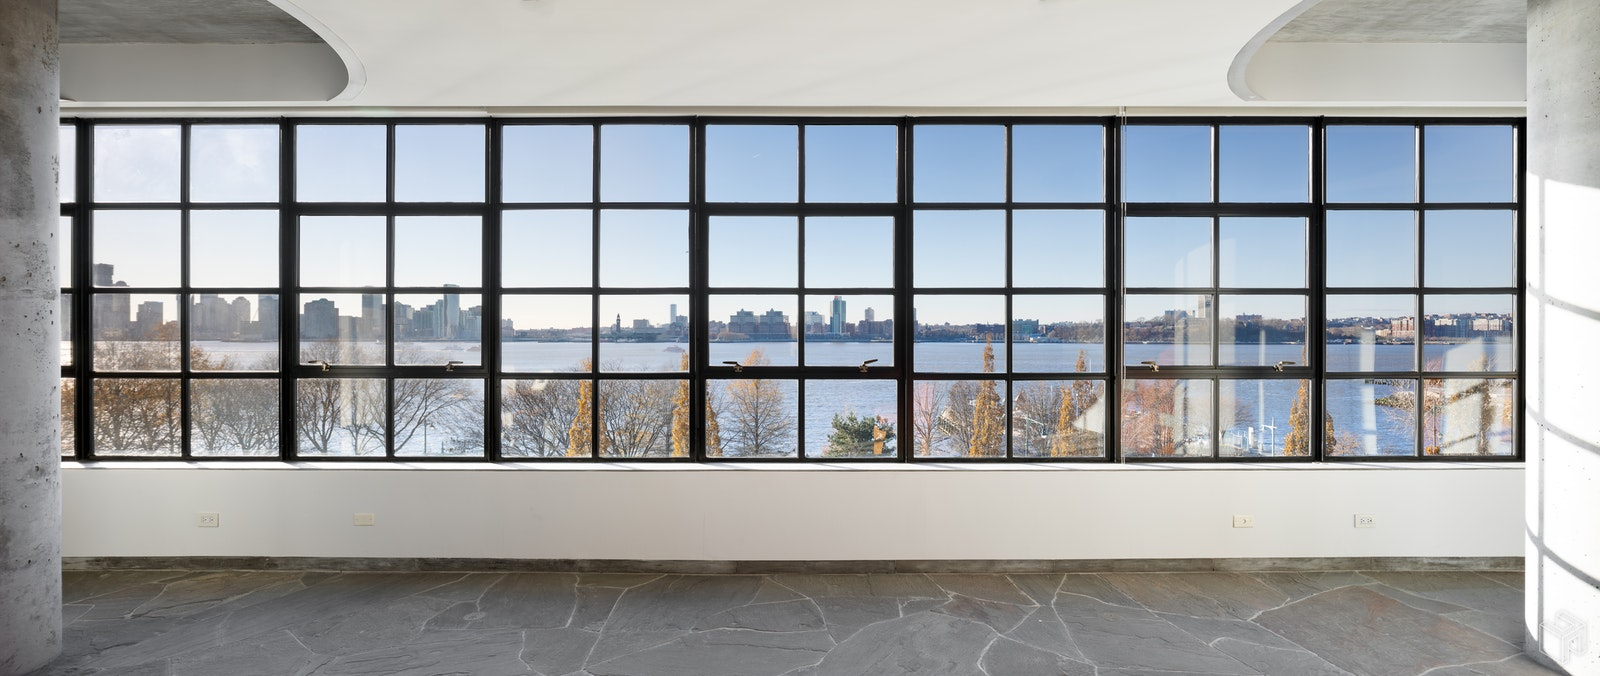 495 West Street, West Village, NYC, 10014, $10,500,000, Property For Sale, Halstead Real Estate, Photo 13